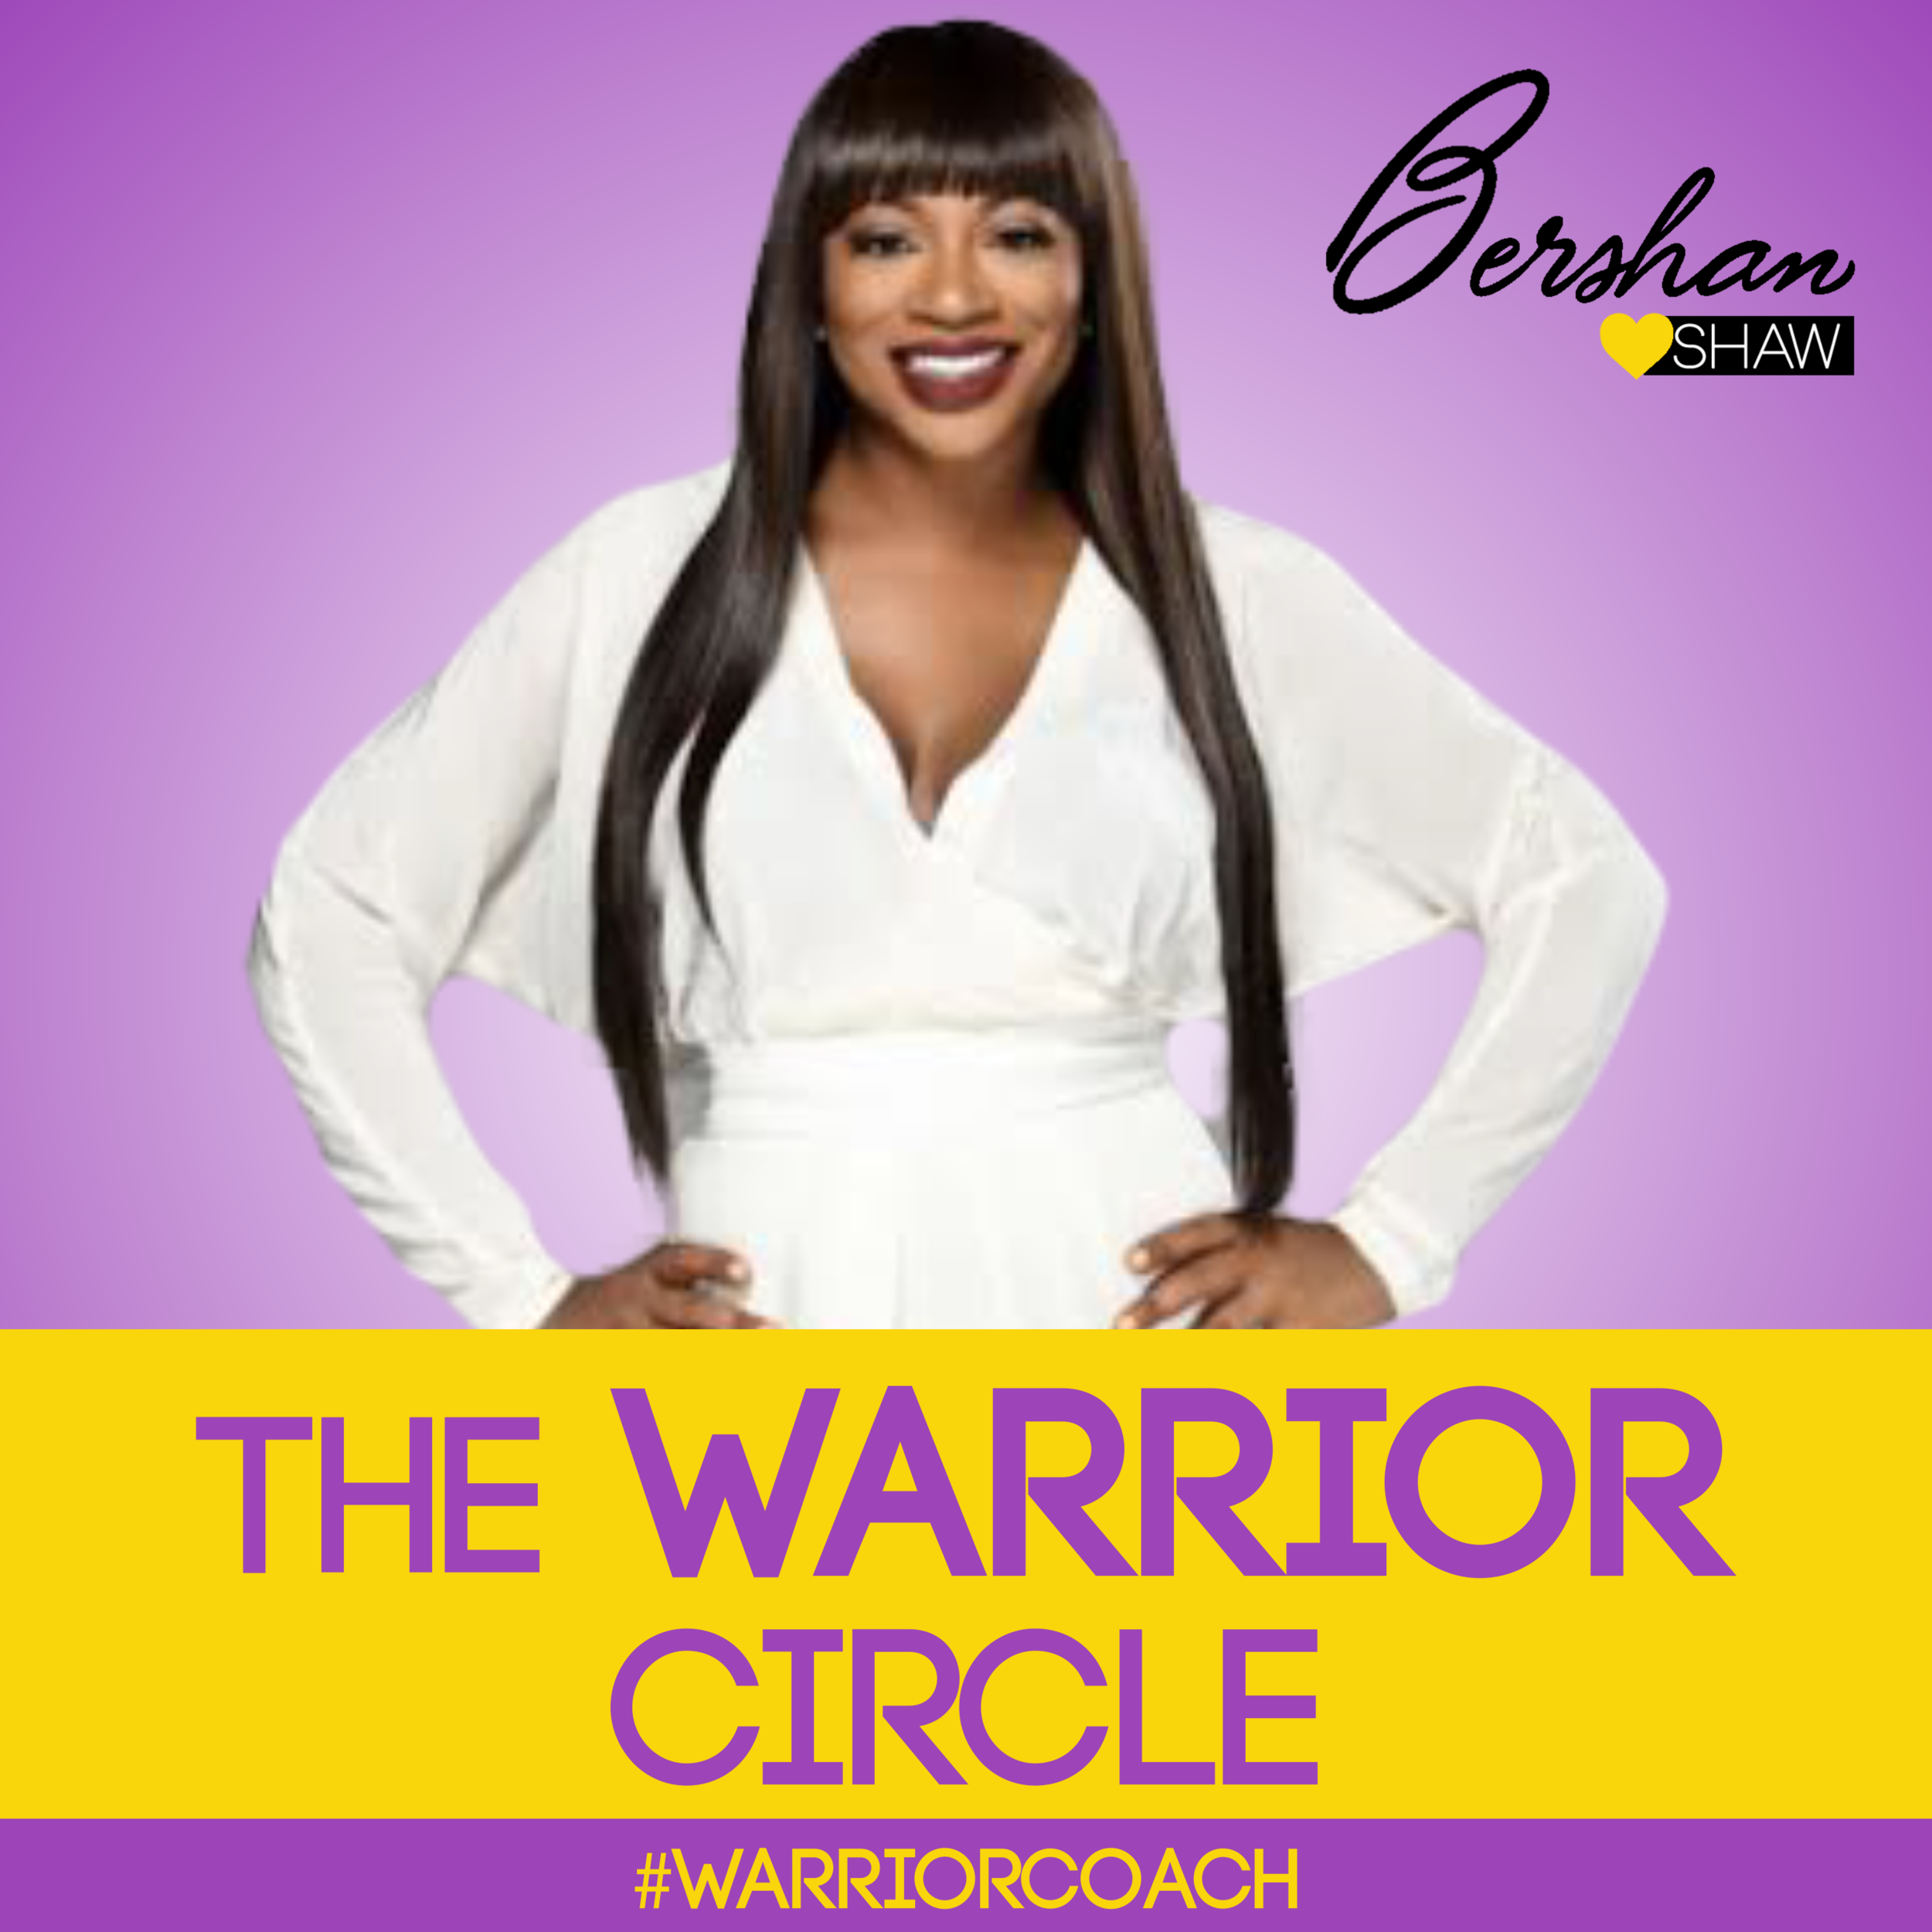 bershan_podcast_iconNEW3.png